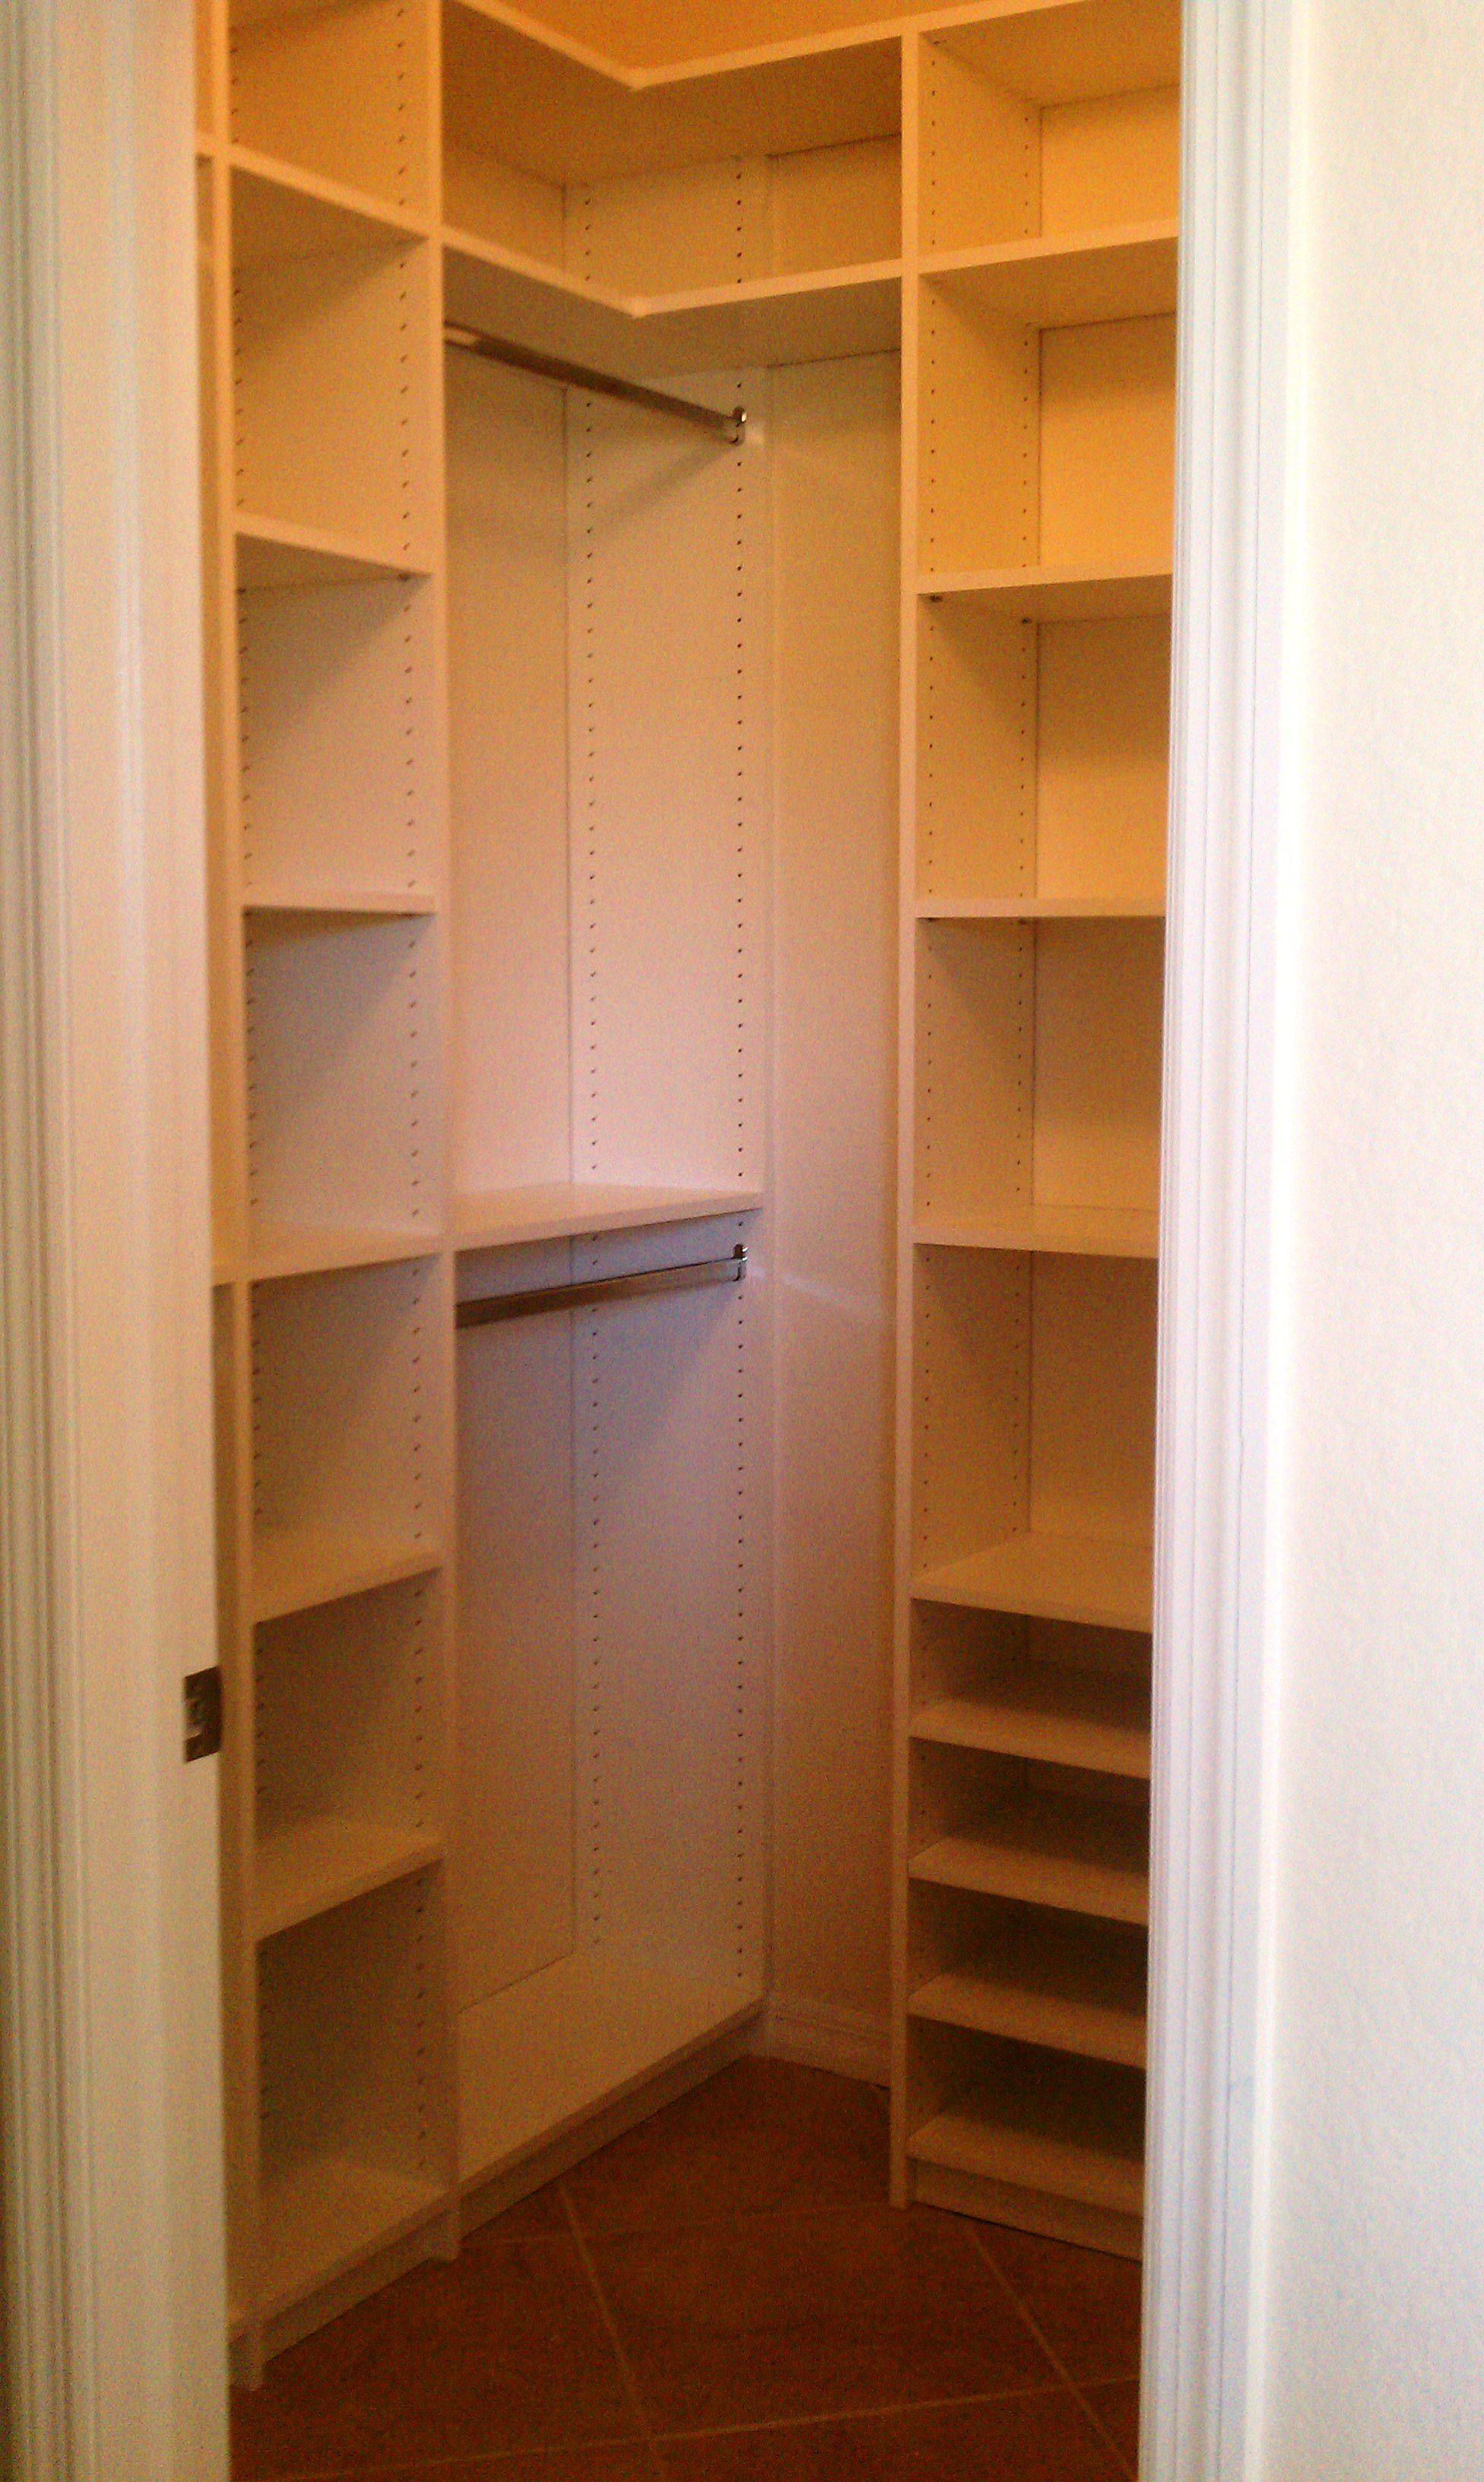 Minimalist closet shelving design ideas midcityeast Closet layout ideas